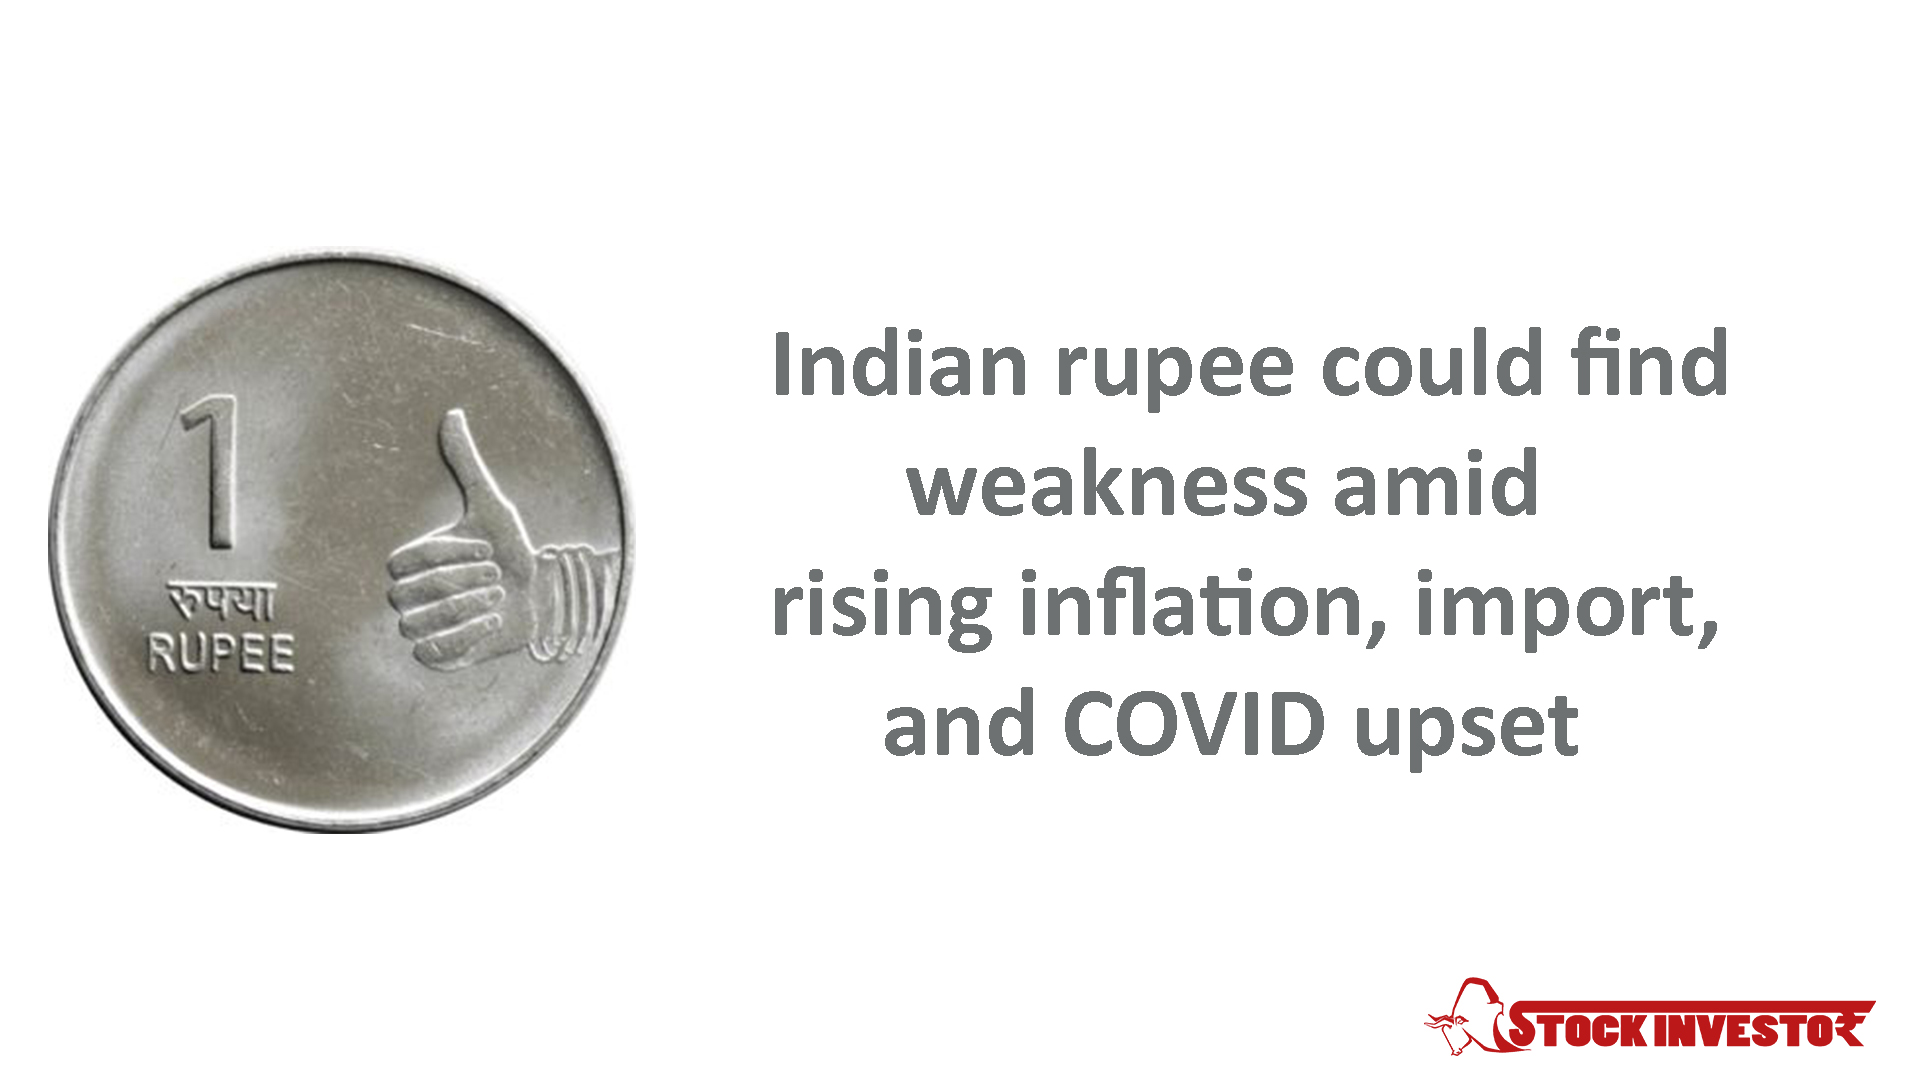 Indian rupee could find weakness amid rising inflation, import and COVID upset